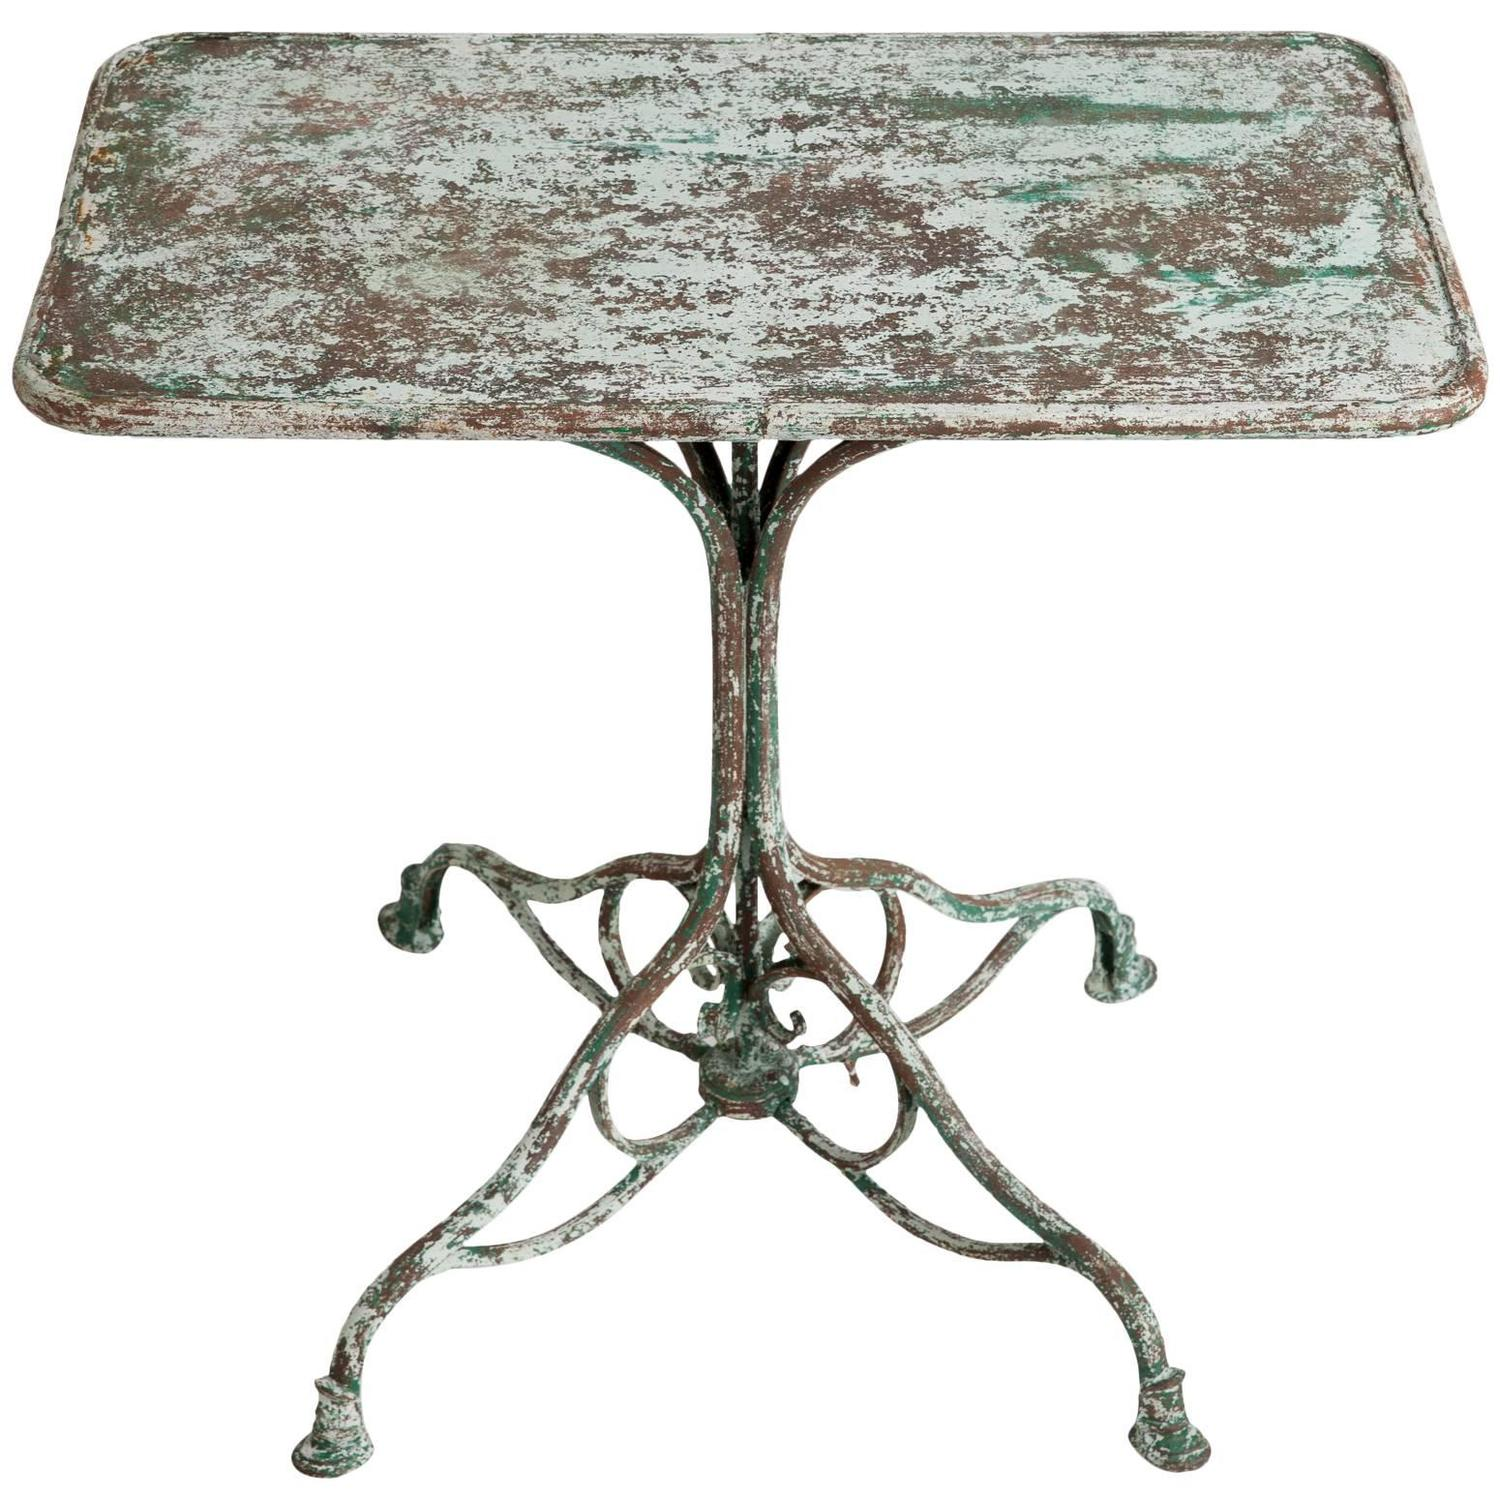 antique cast iron garden table and chairs pillow for office chair french wrought from arras circa